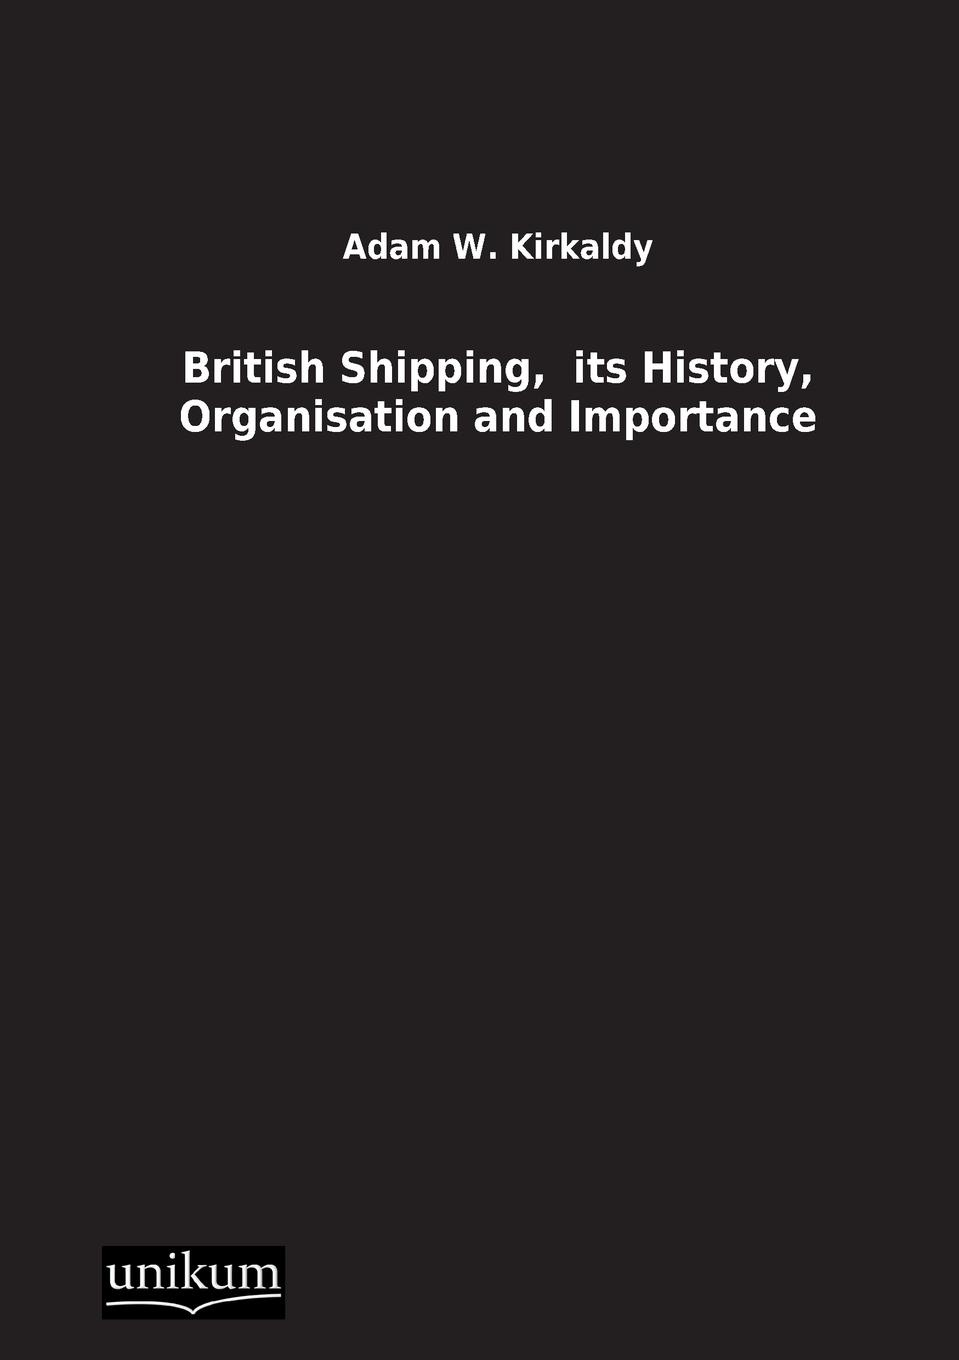 Adam W. Kirkaldy British Shipping, Its History, Organisation and Importance